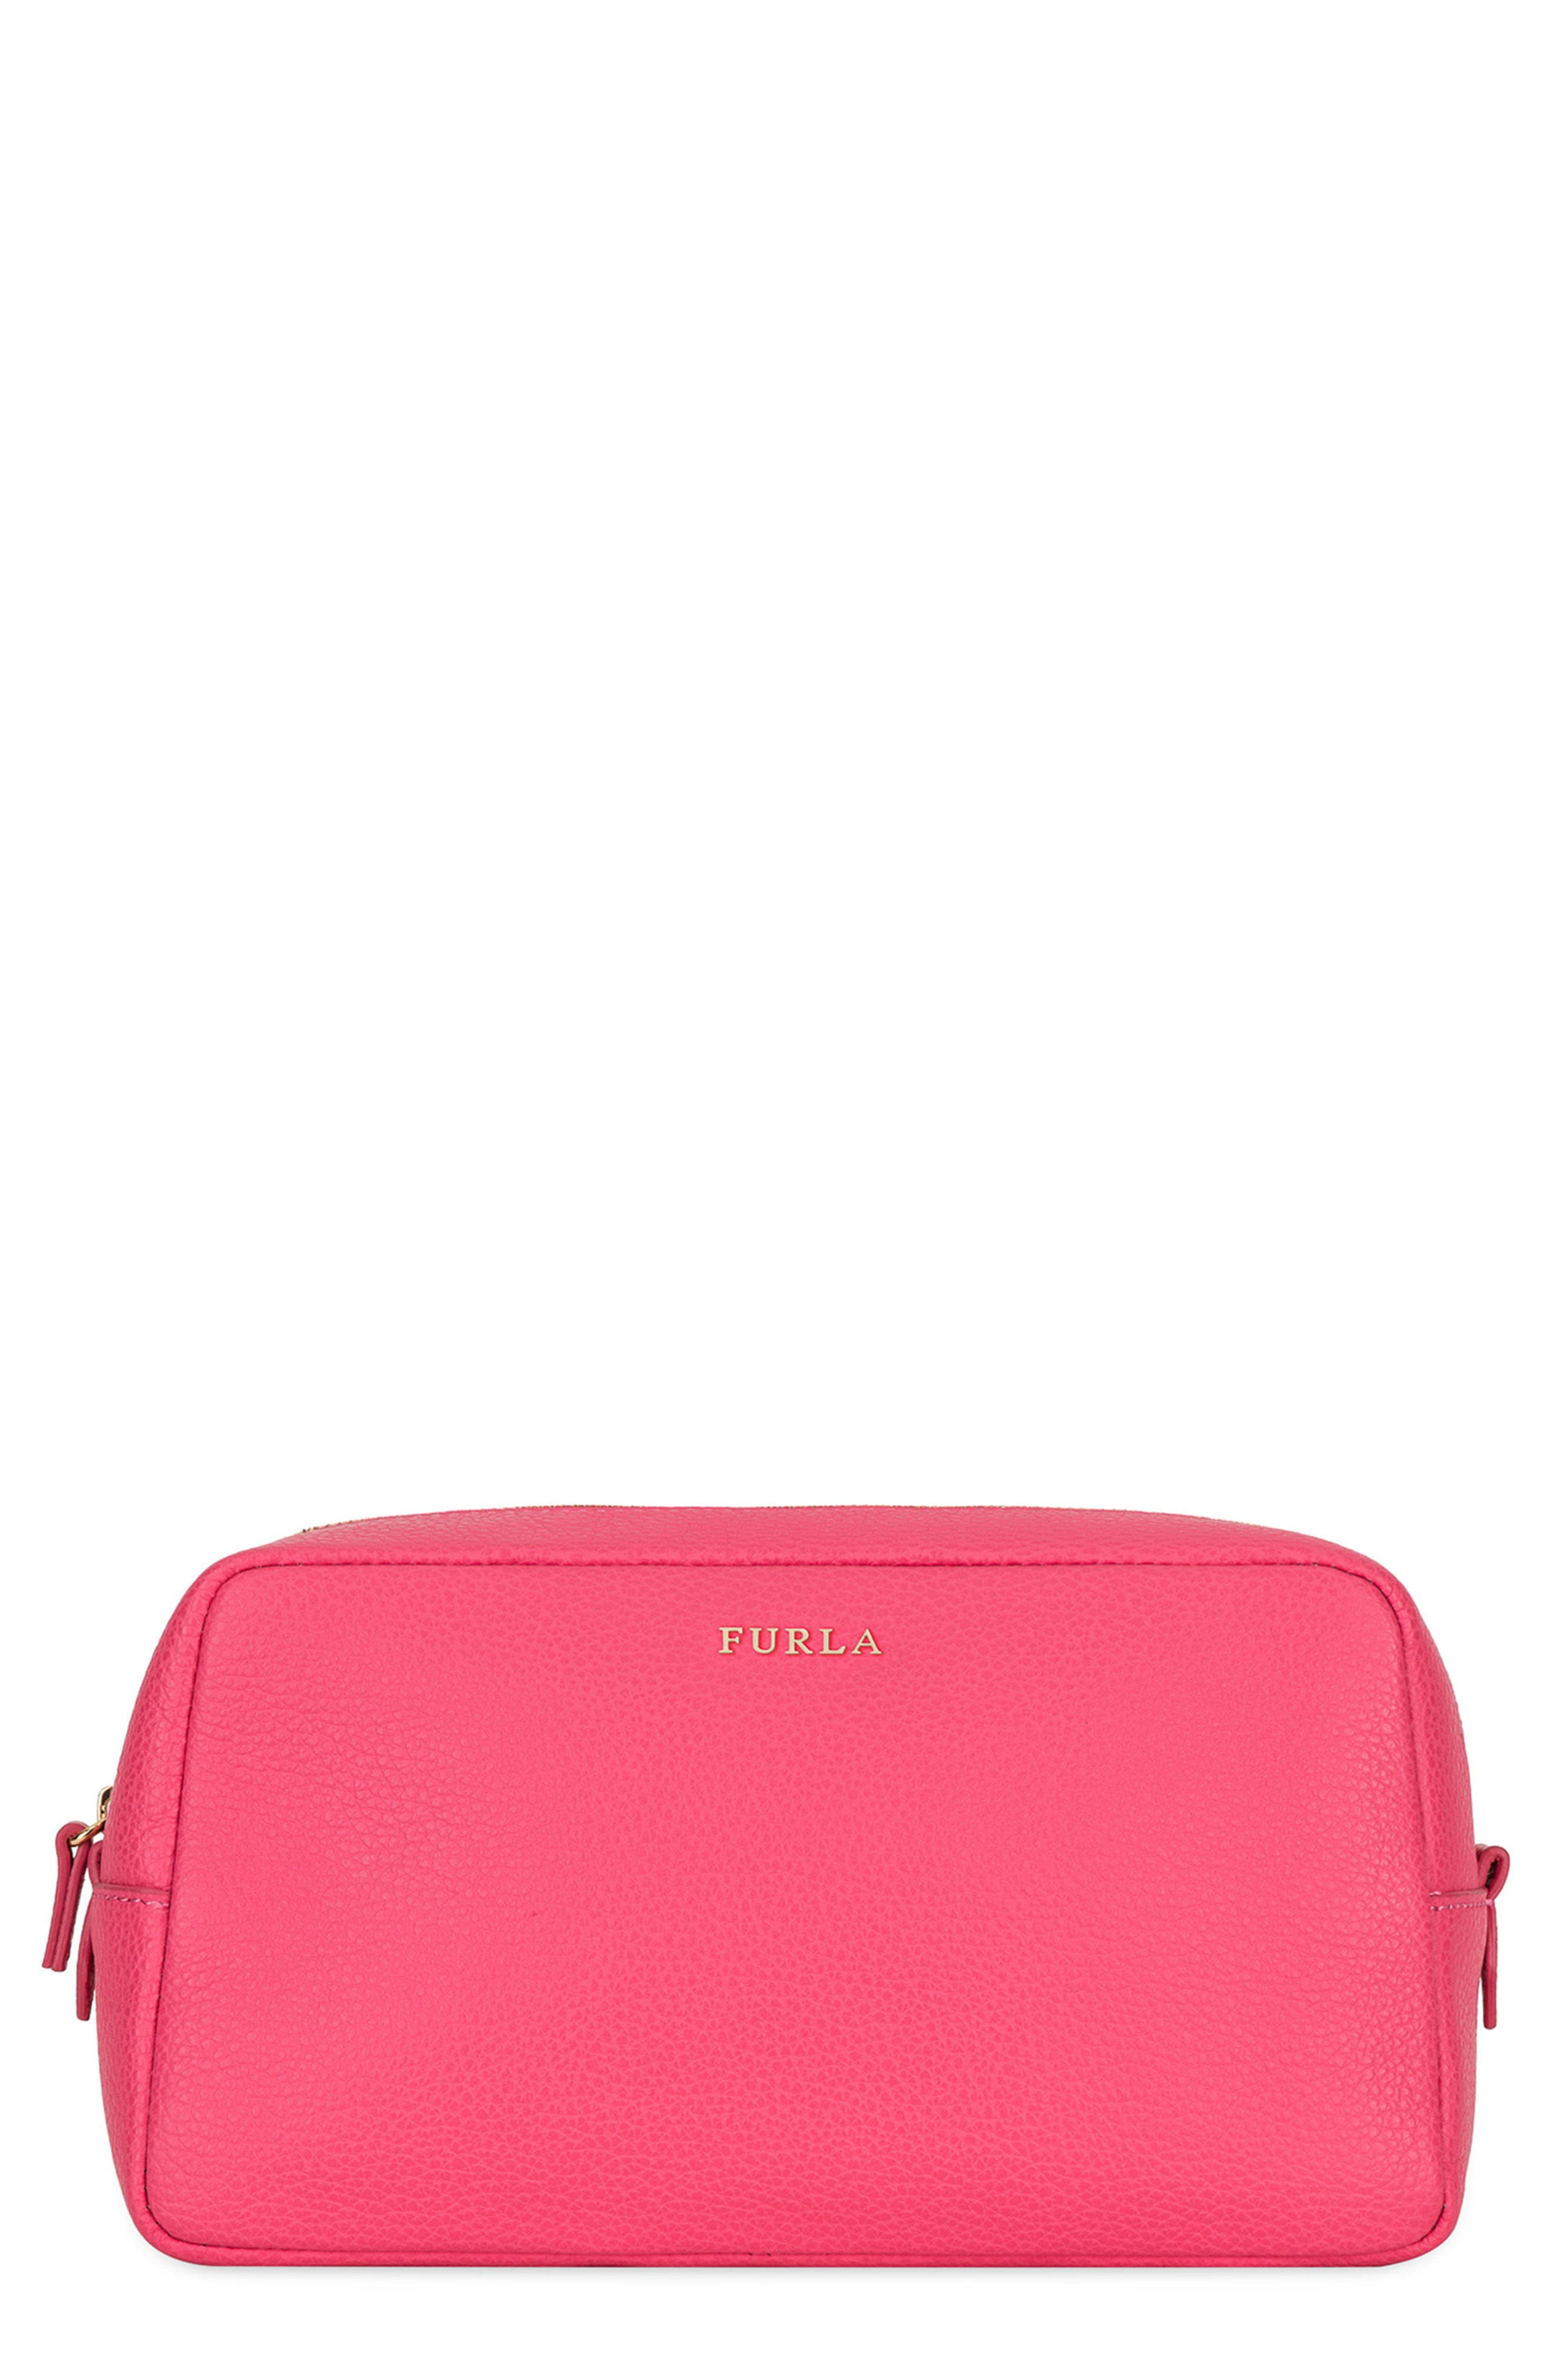 Furla Bloom Extra Large Leather Cosmetic Bag